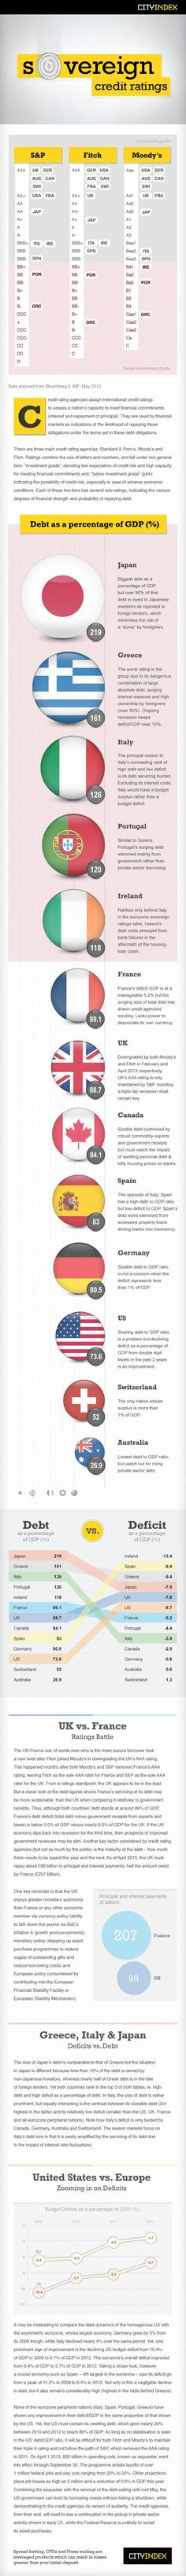 Trading infographic : Sovereign Ratings Infographic   City Index